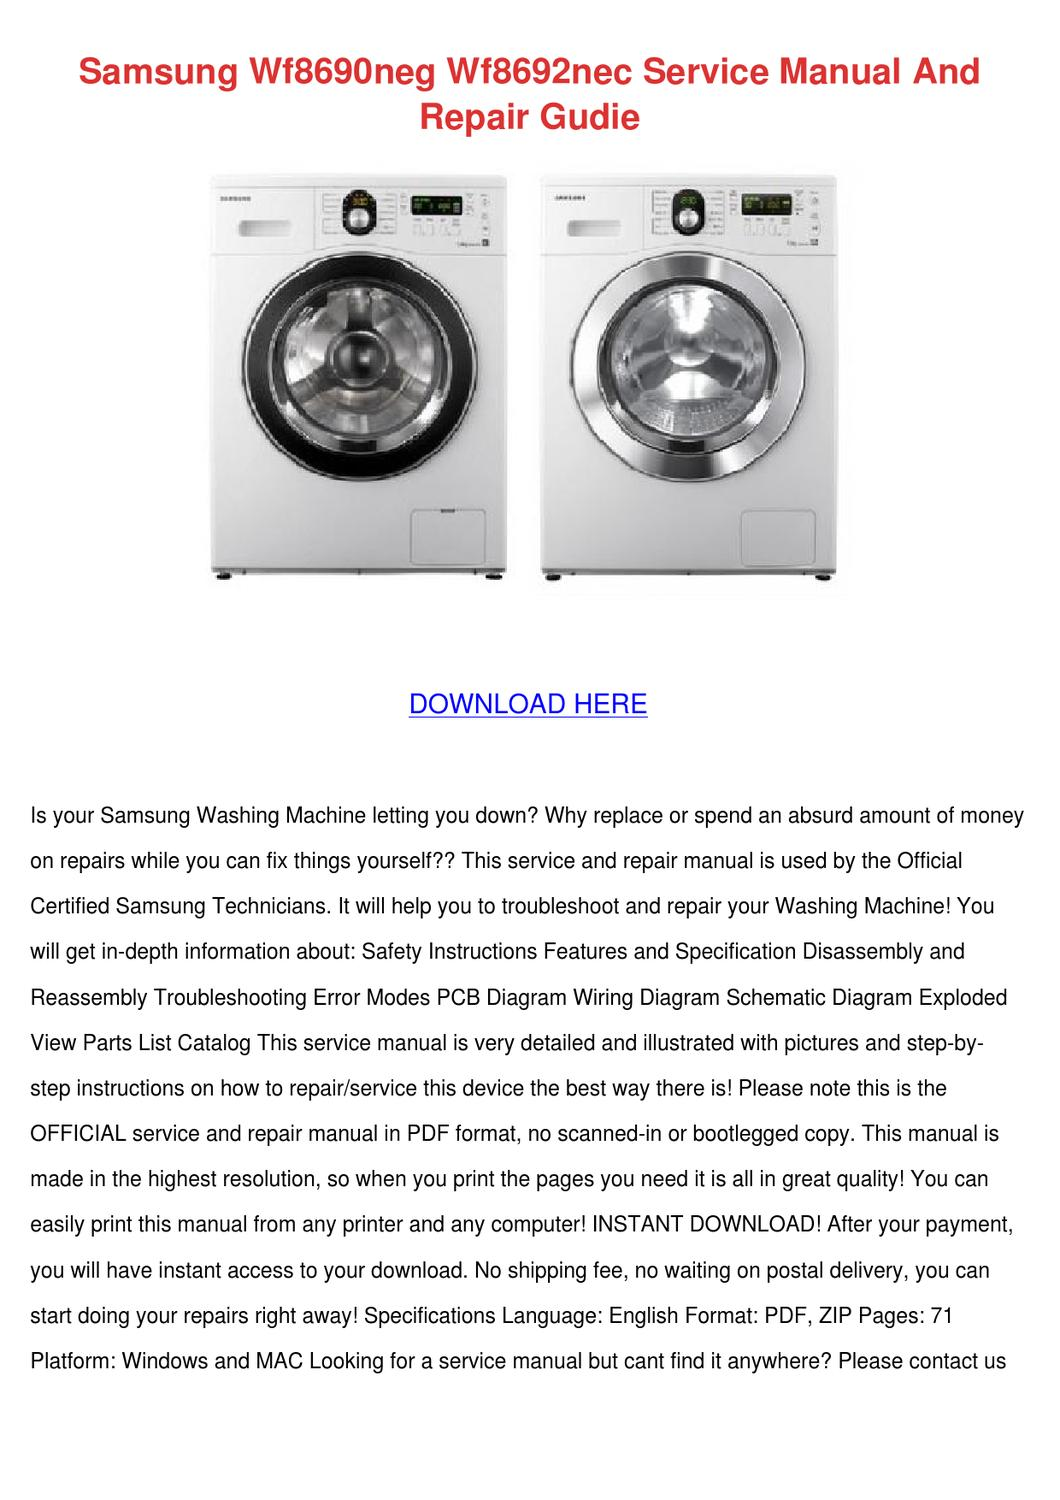 Samsung Wf8690neg Wf8692nec Service Manual An By Aprilalbers Issuu Wiring Diagram Of Washing Machine Pdf